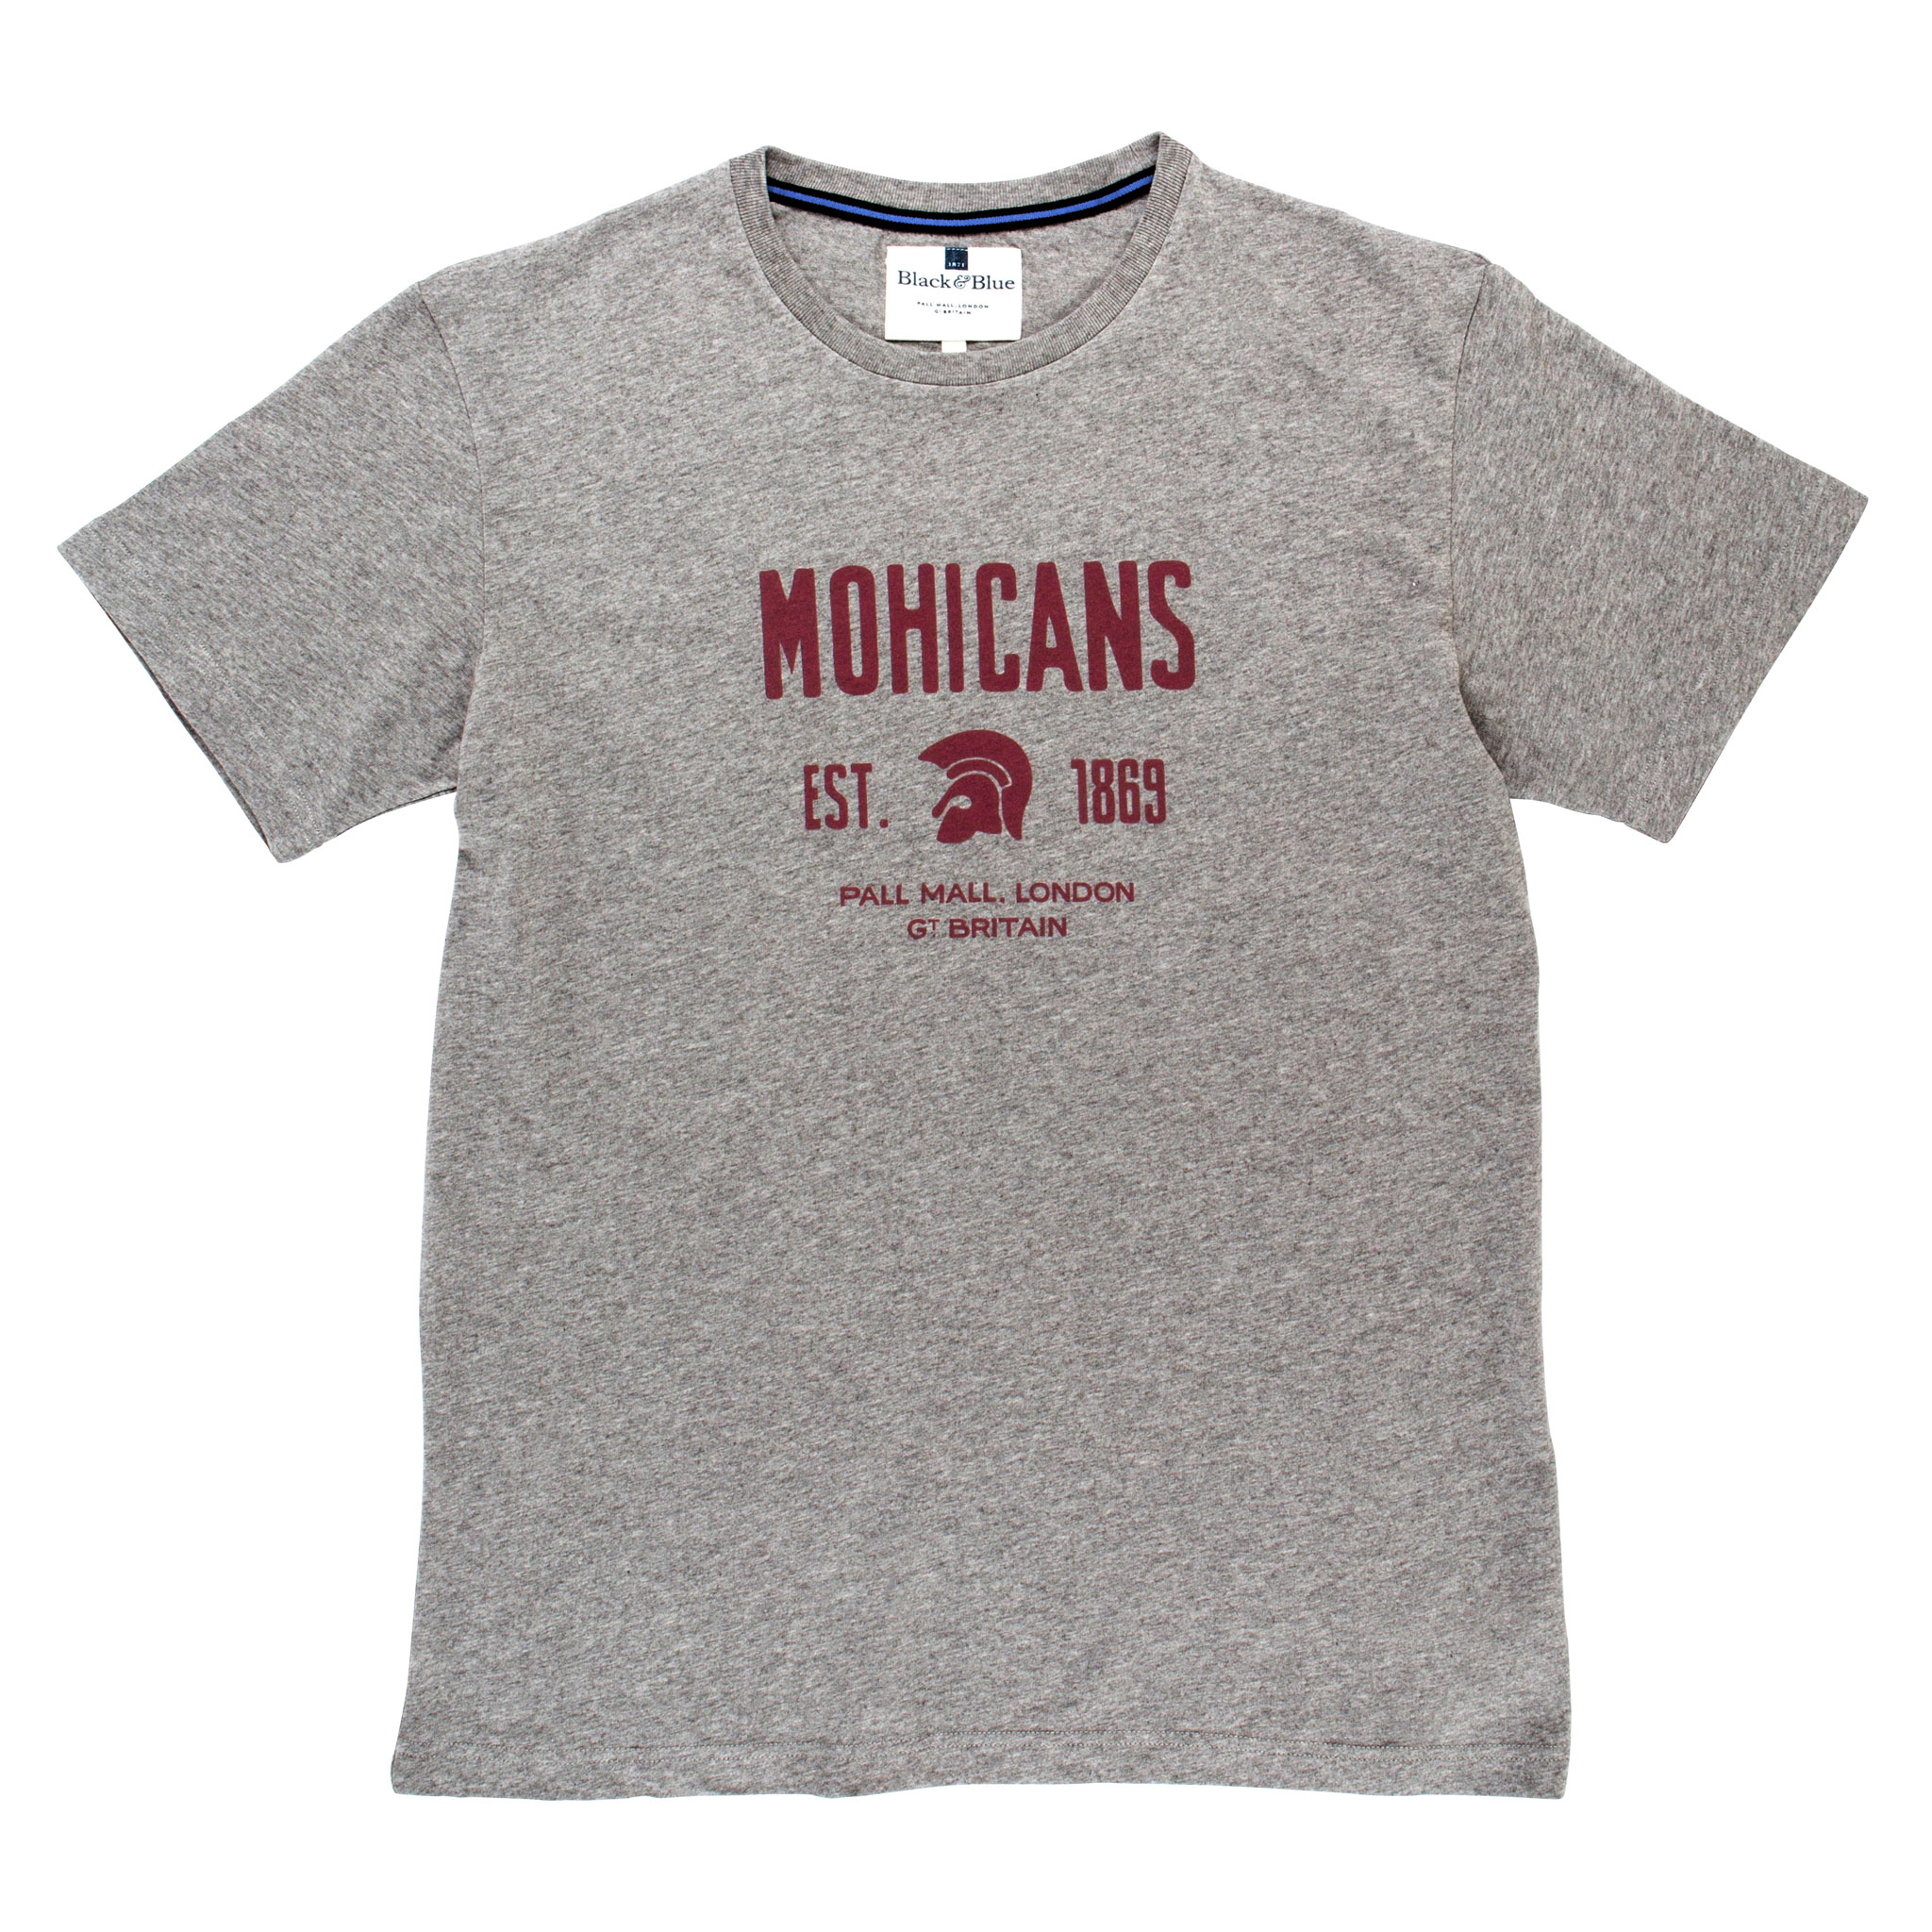 Mohicans Grey T-shirt